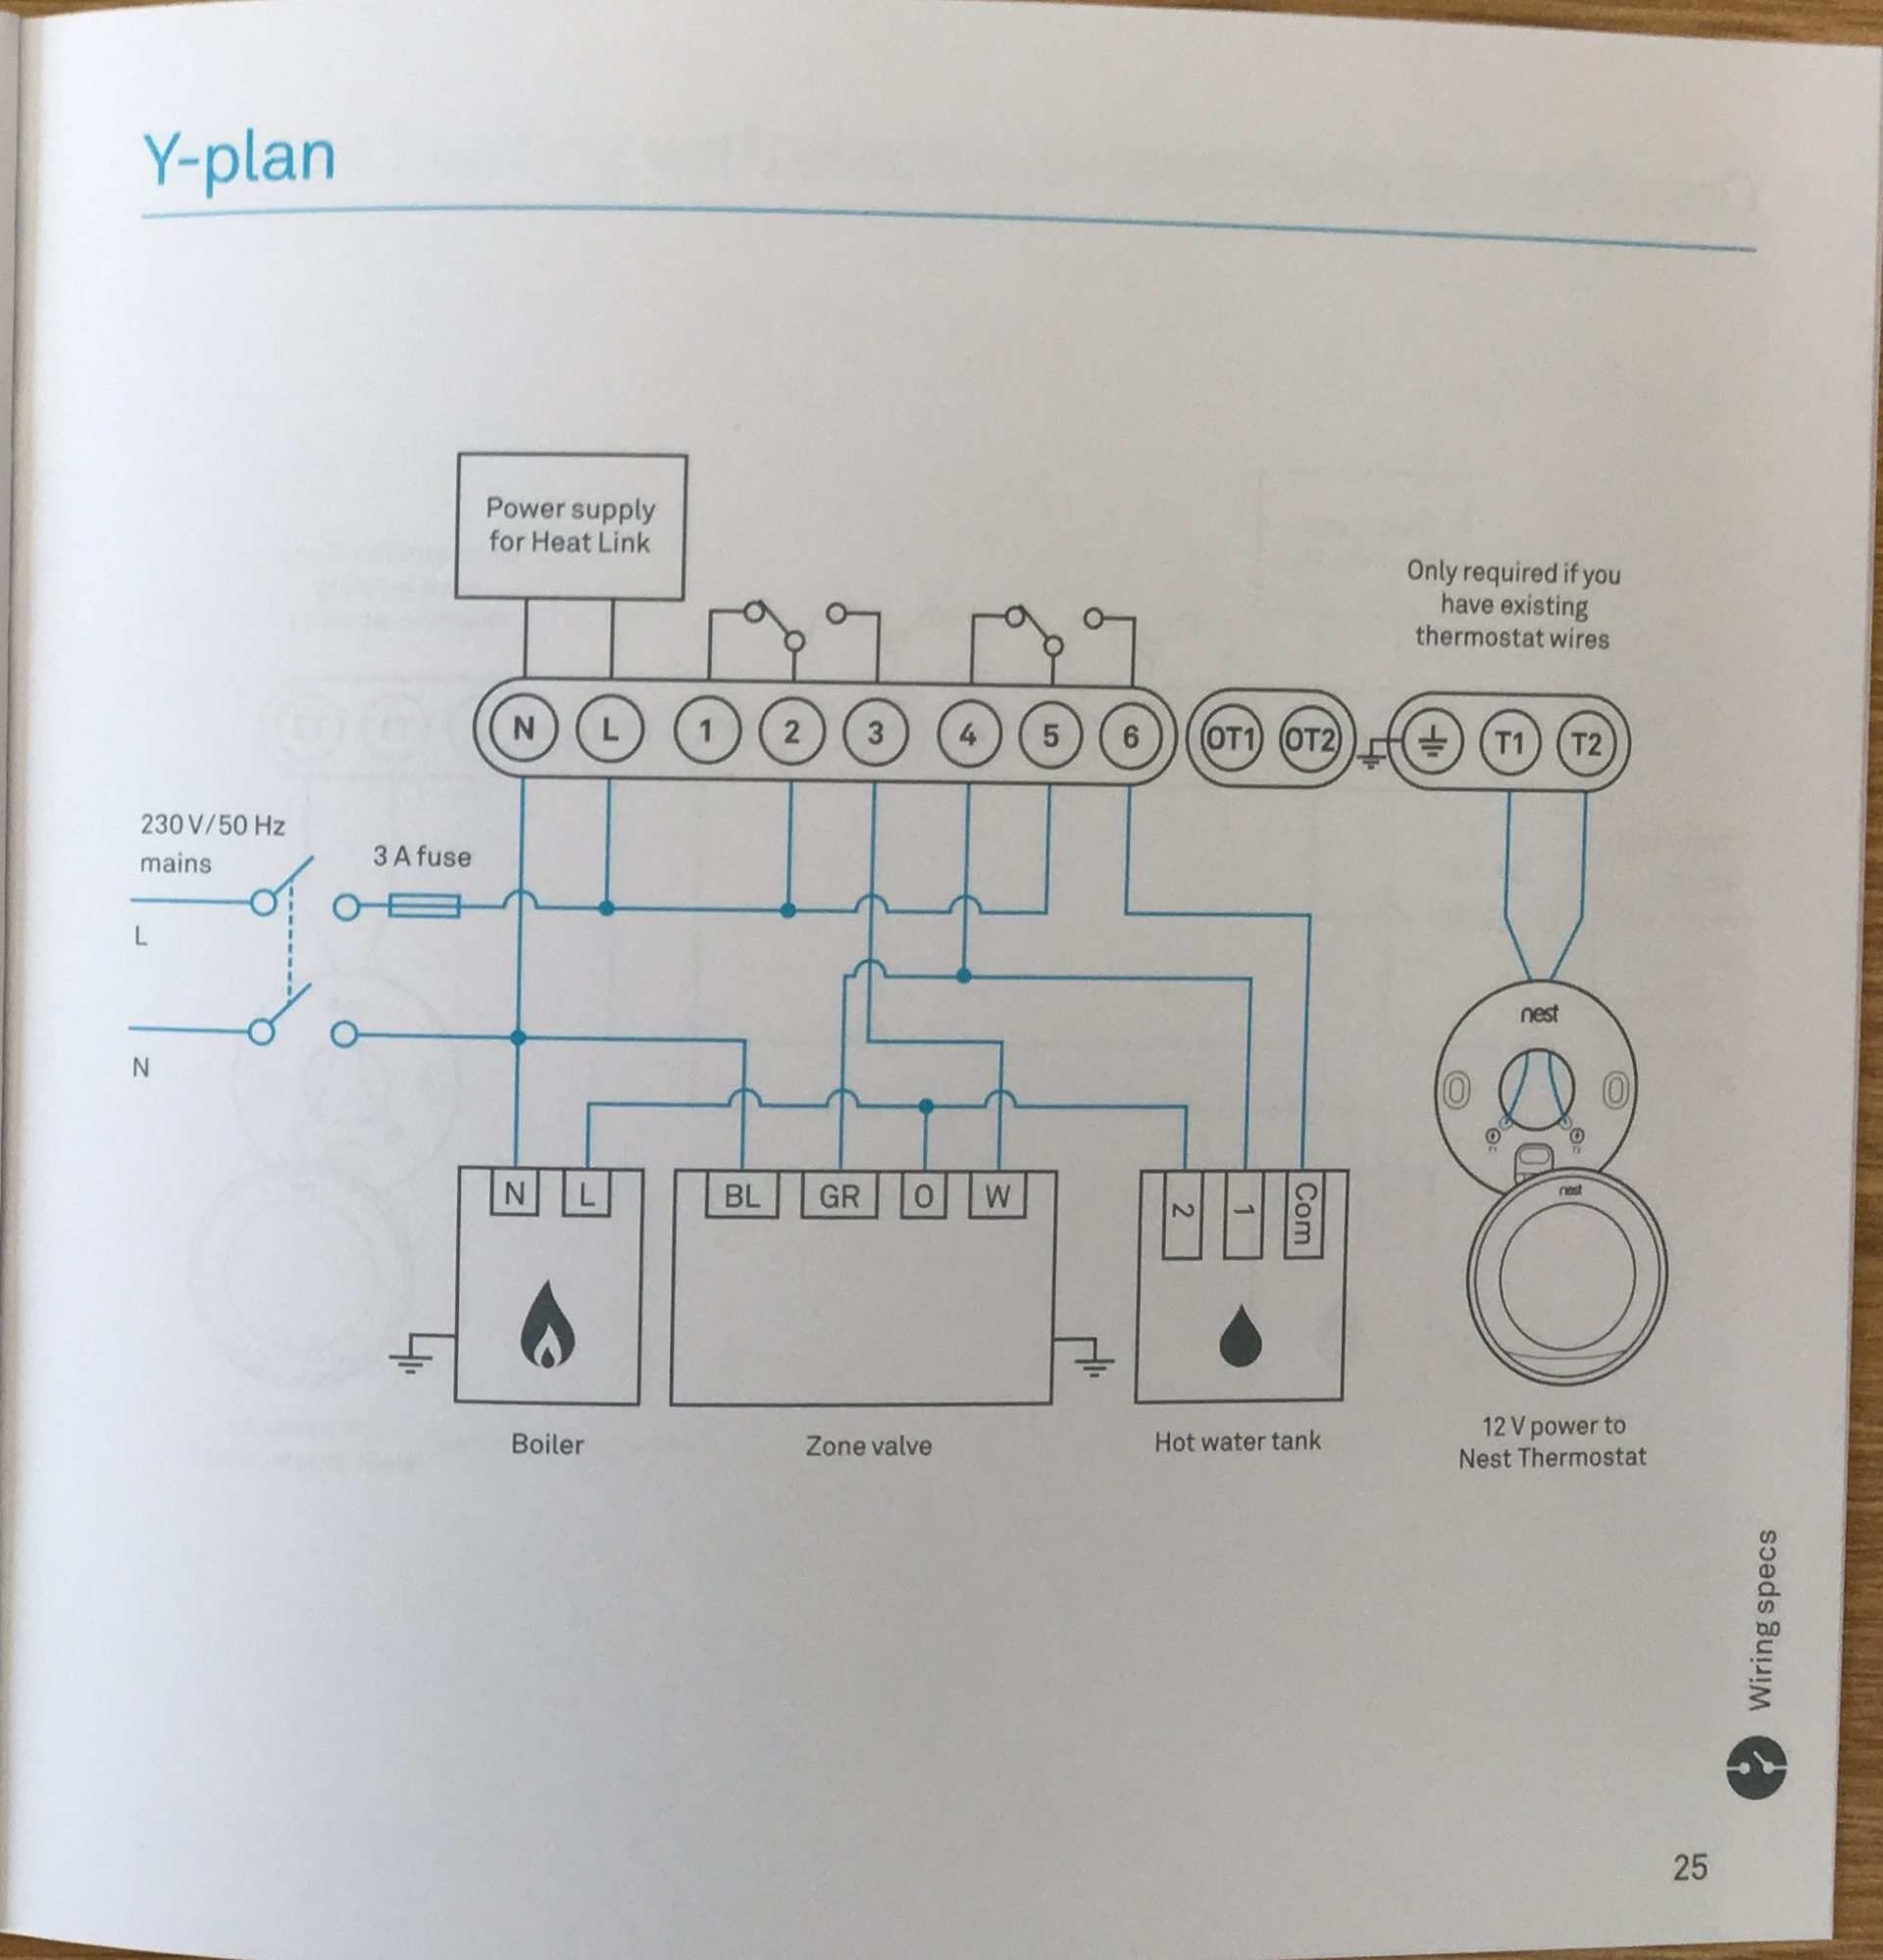 How To Install The Nest Learning Thermostat (3Rd Gen) In A Y-Plan - What Is The Wiring Diagram For A Forced Air Furnace Using The Nest Thrmostat